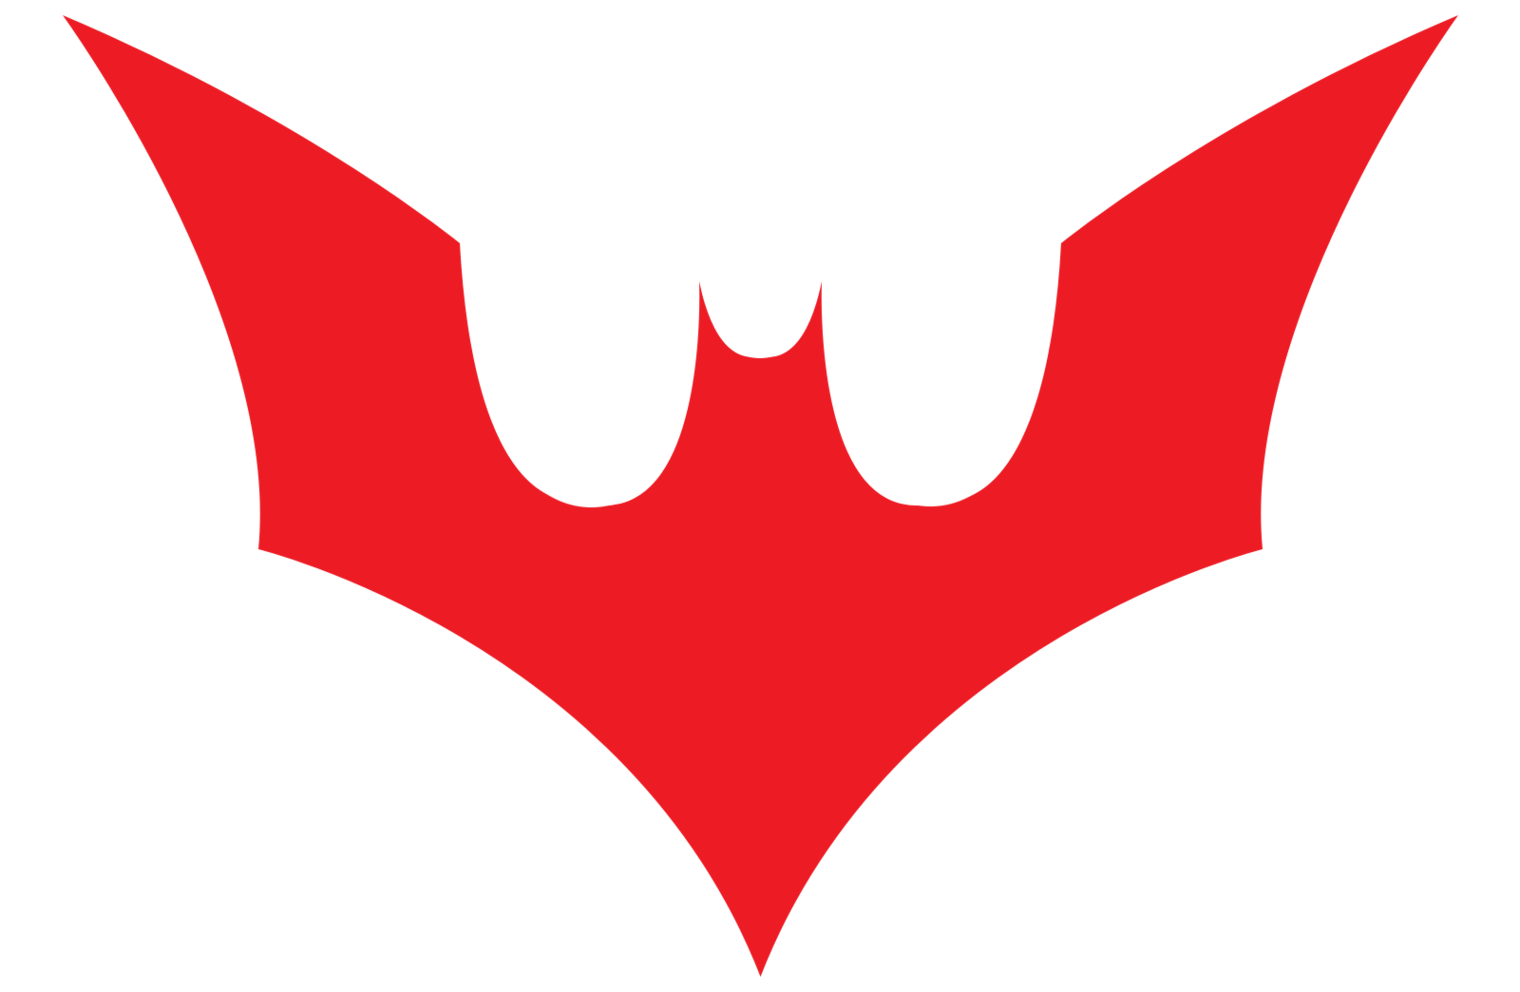 Batgirl Logo Png Clipart - Free to use Clip Art Resource